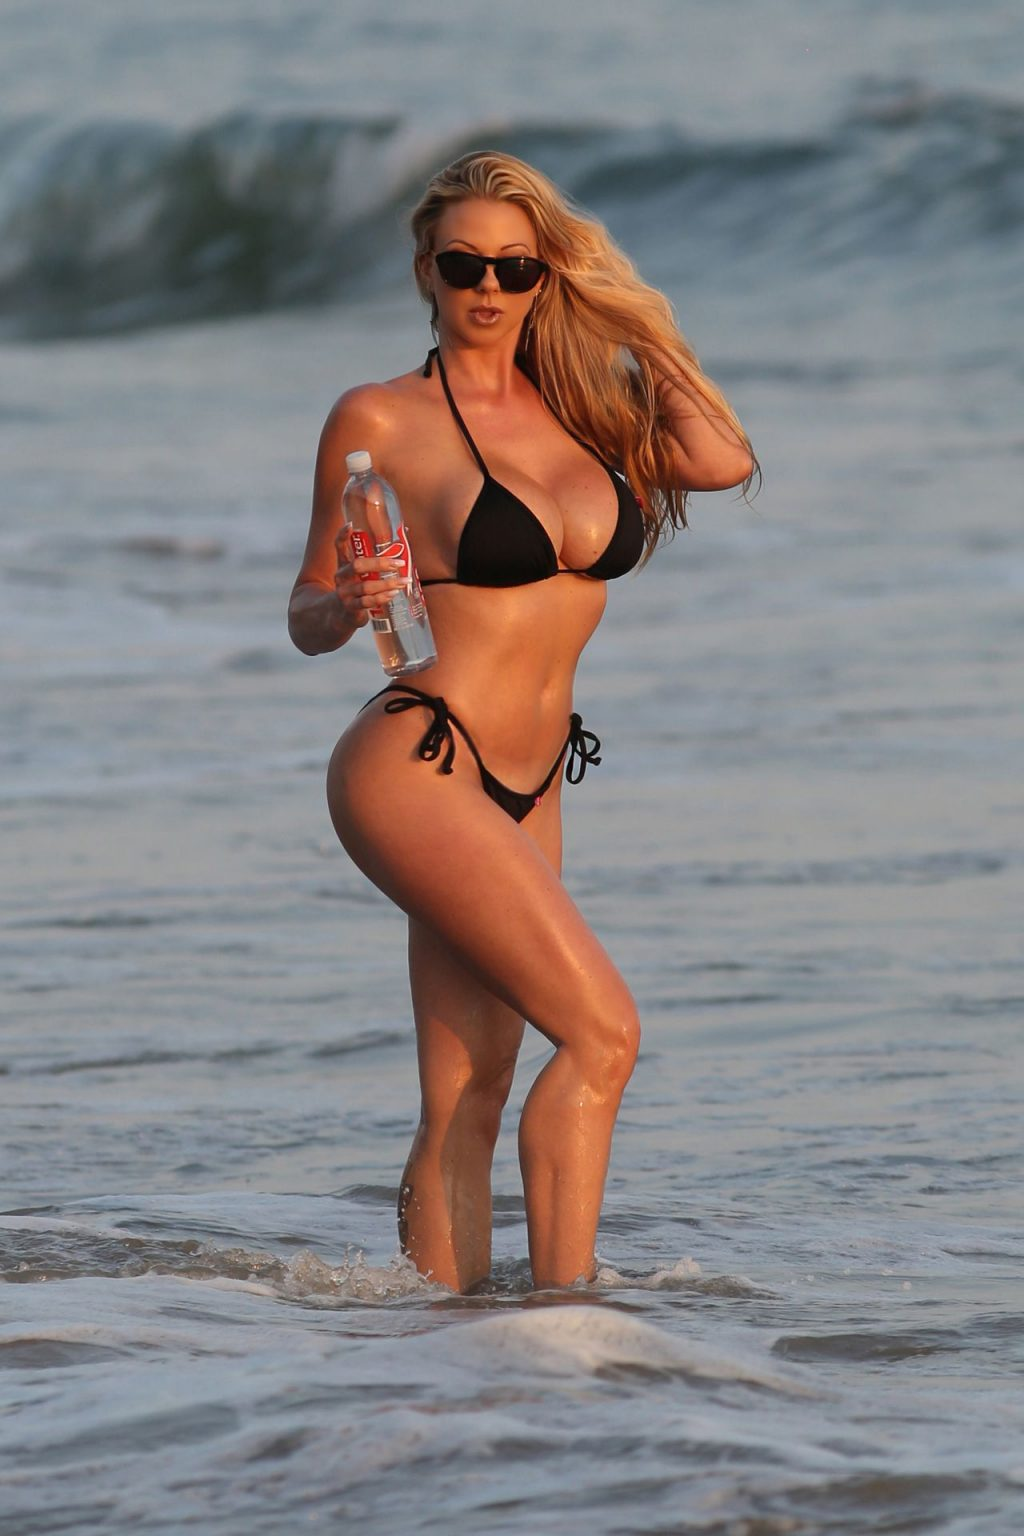 Elke Hanschke Shows Off Her Sexy Beach Body for a 138 Water Photoshoot in Malibu (15 Photos)